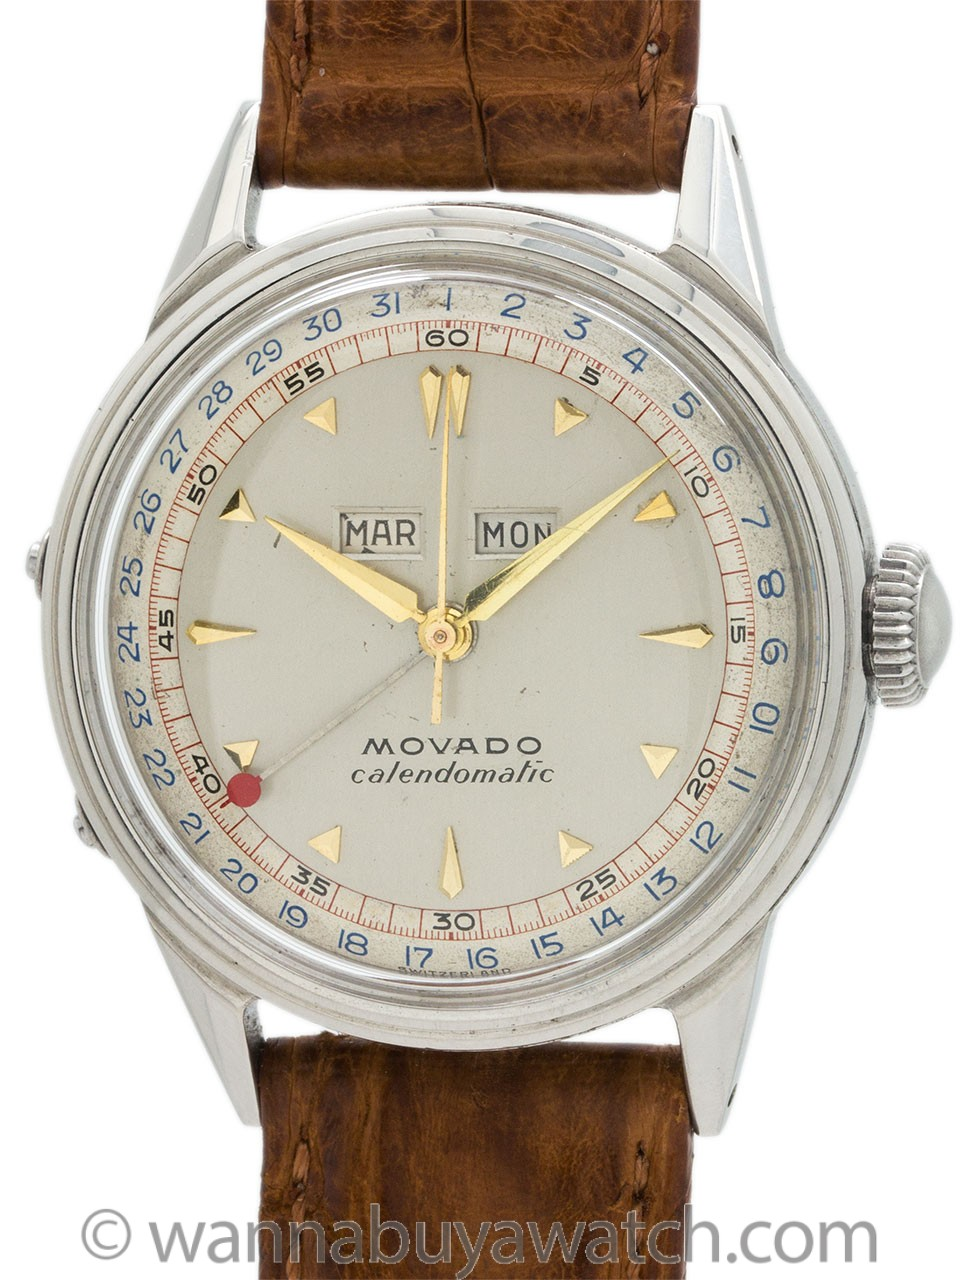 Movado Calendomatic Stainless Steel circa 1950's